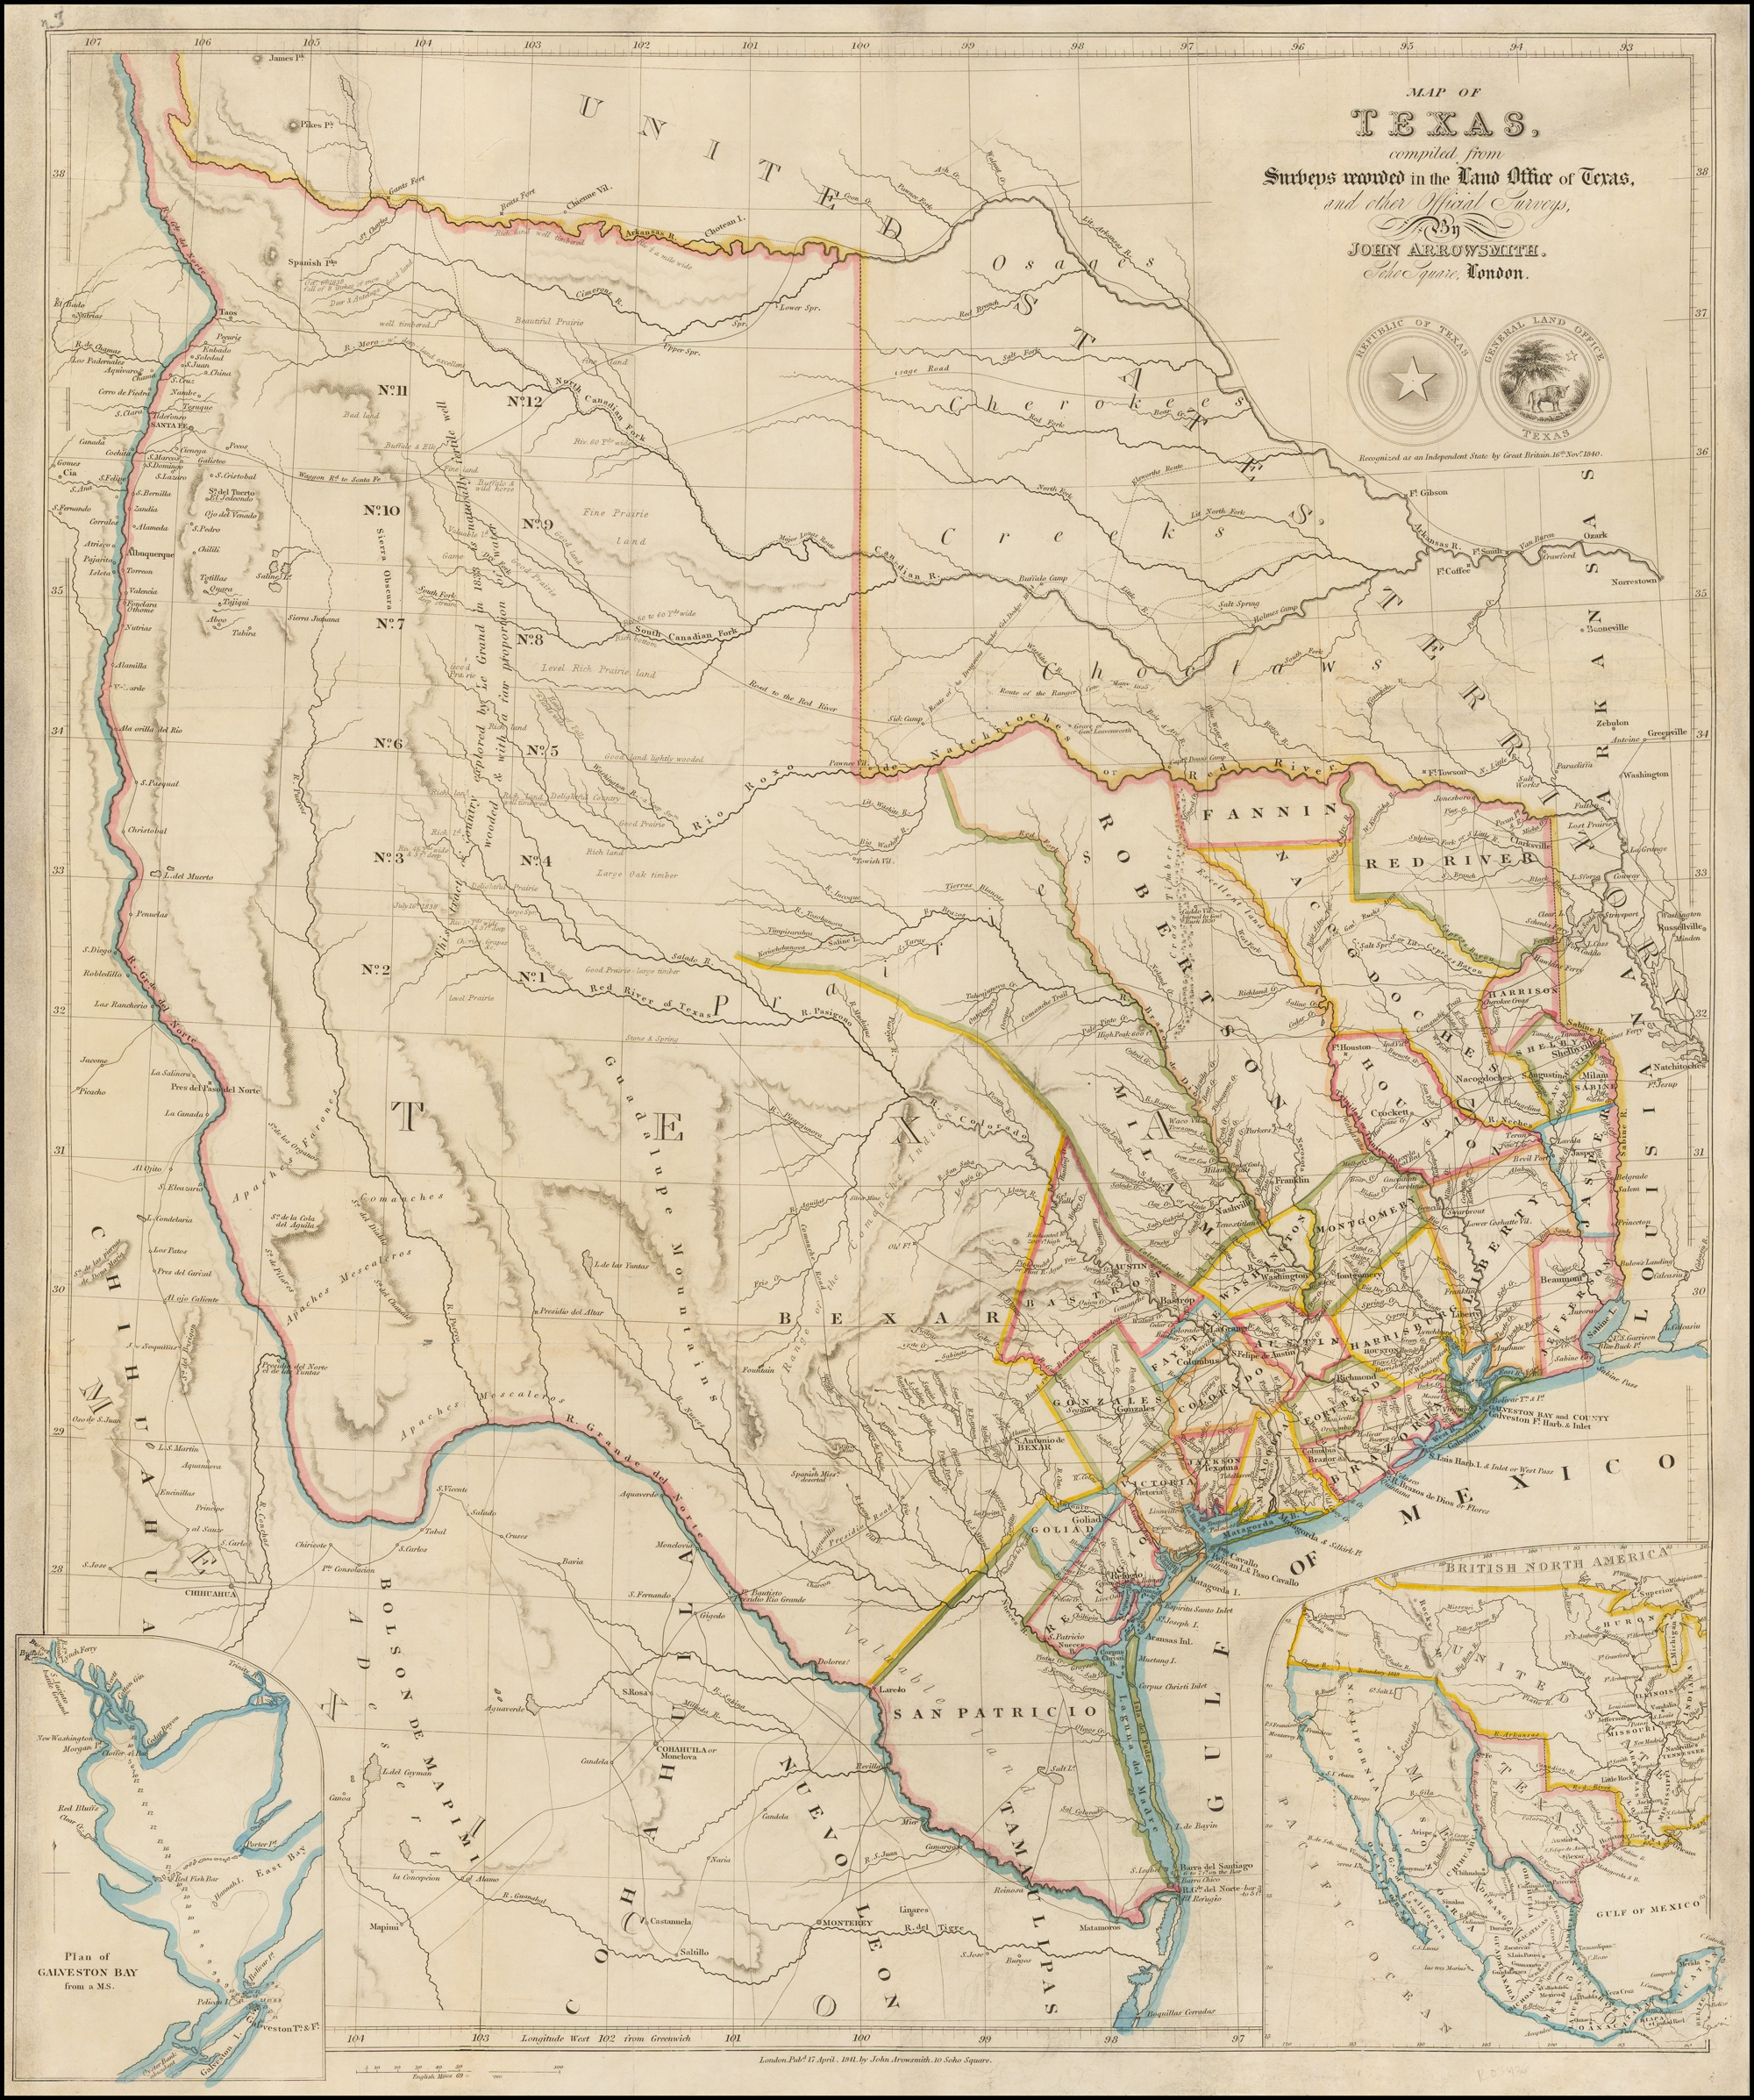 A Map Of Texas, Compiled From Surveys Recorded In The Land Office Of - Texas General Land Office Maps